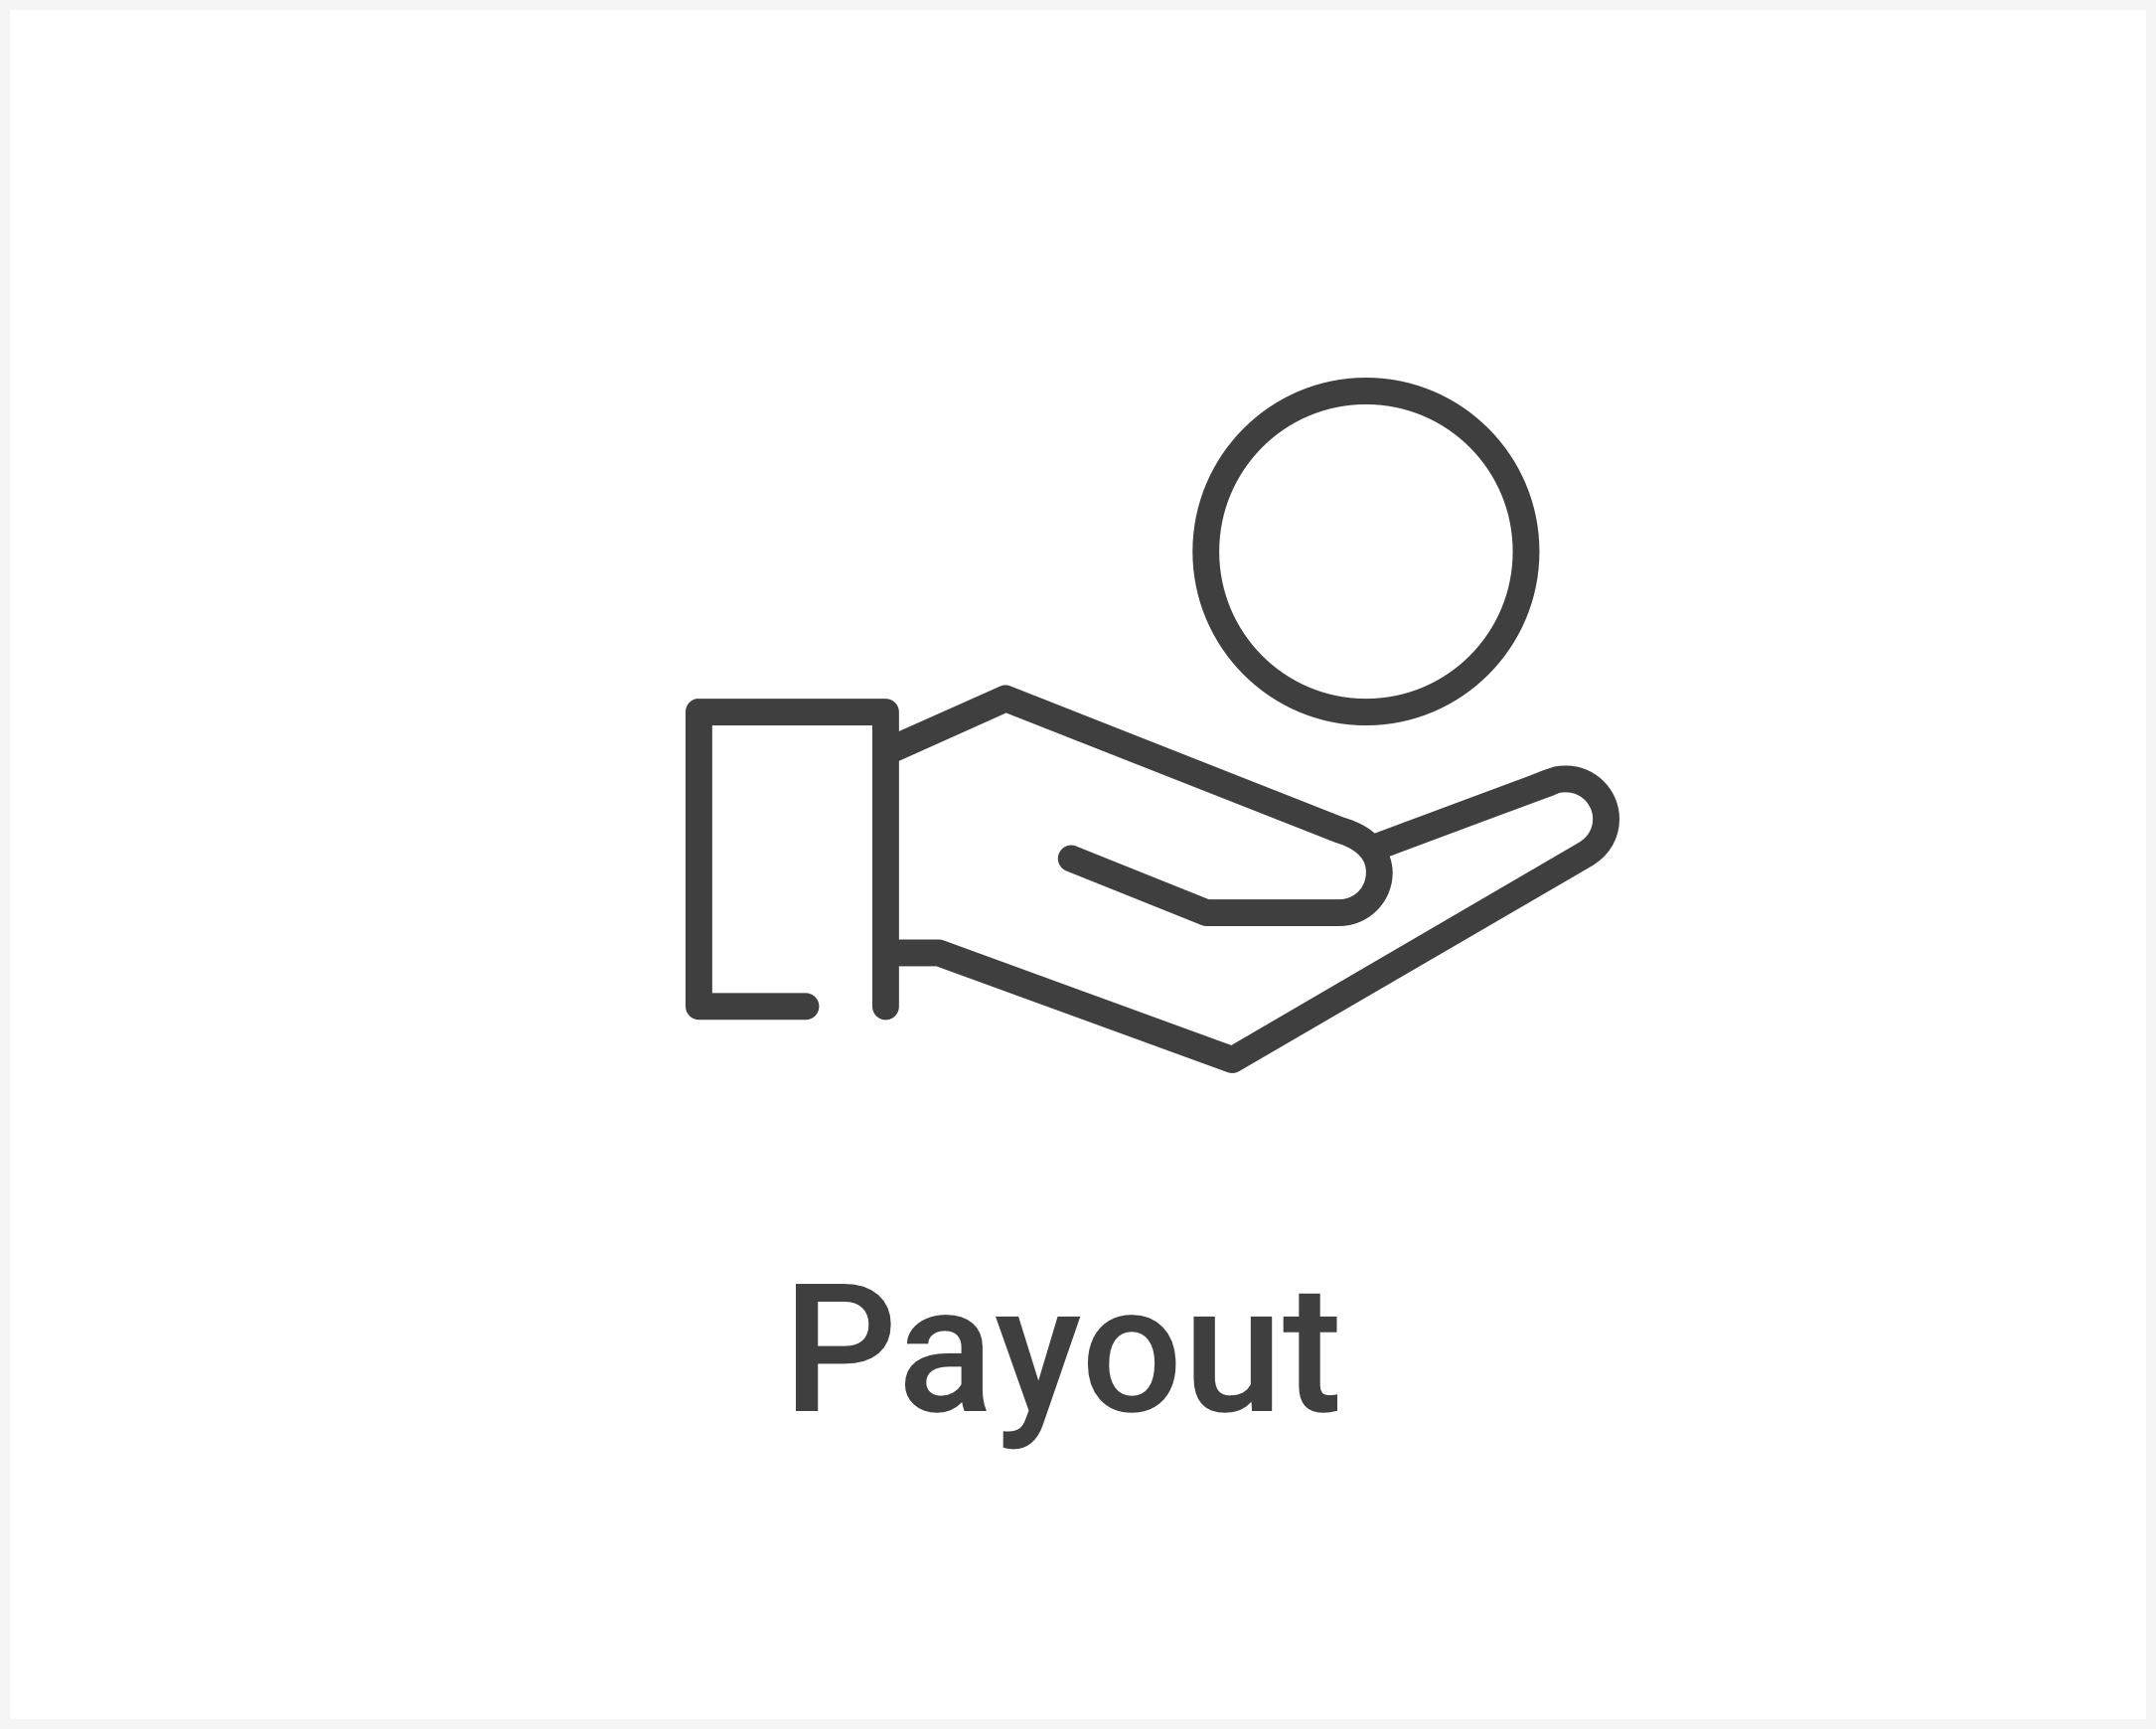 payout2.png